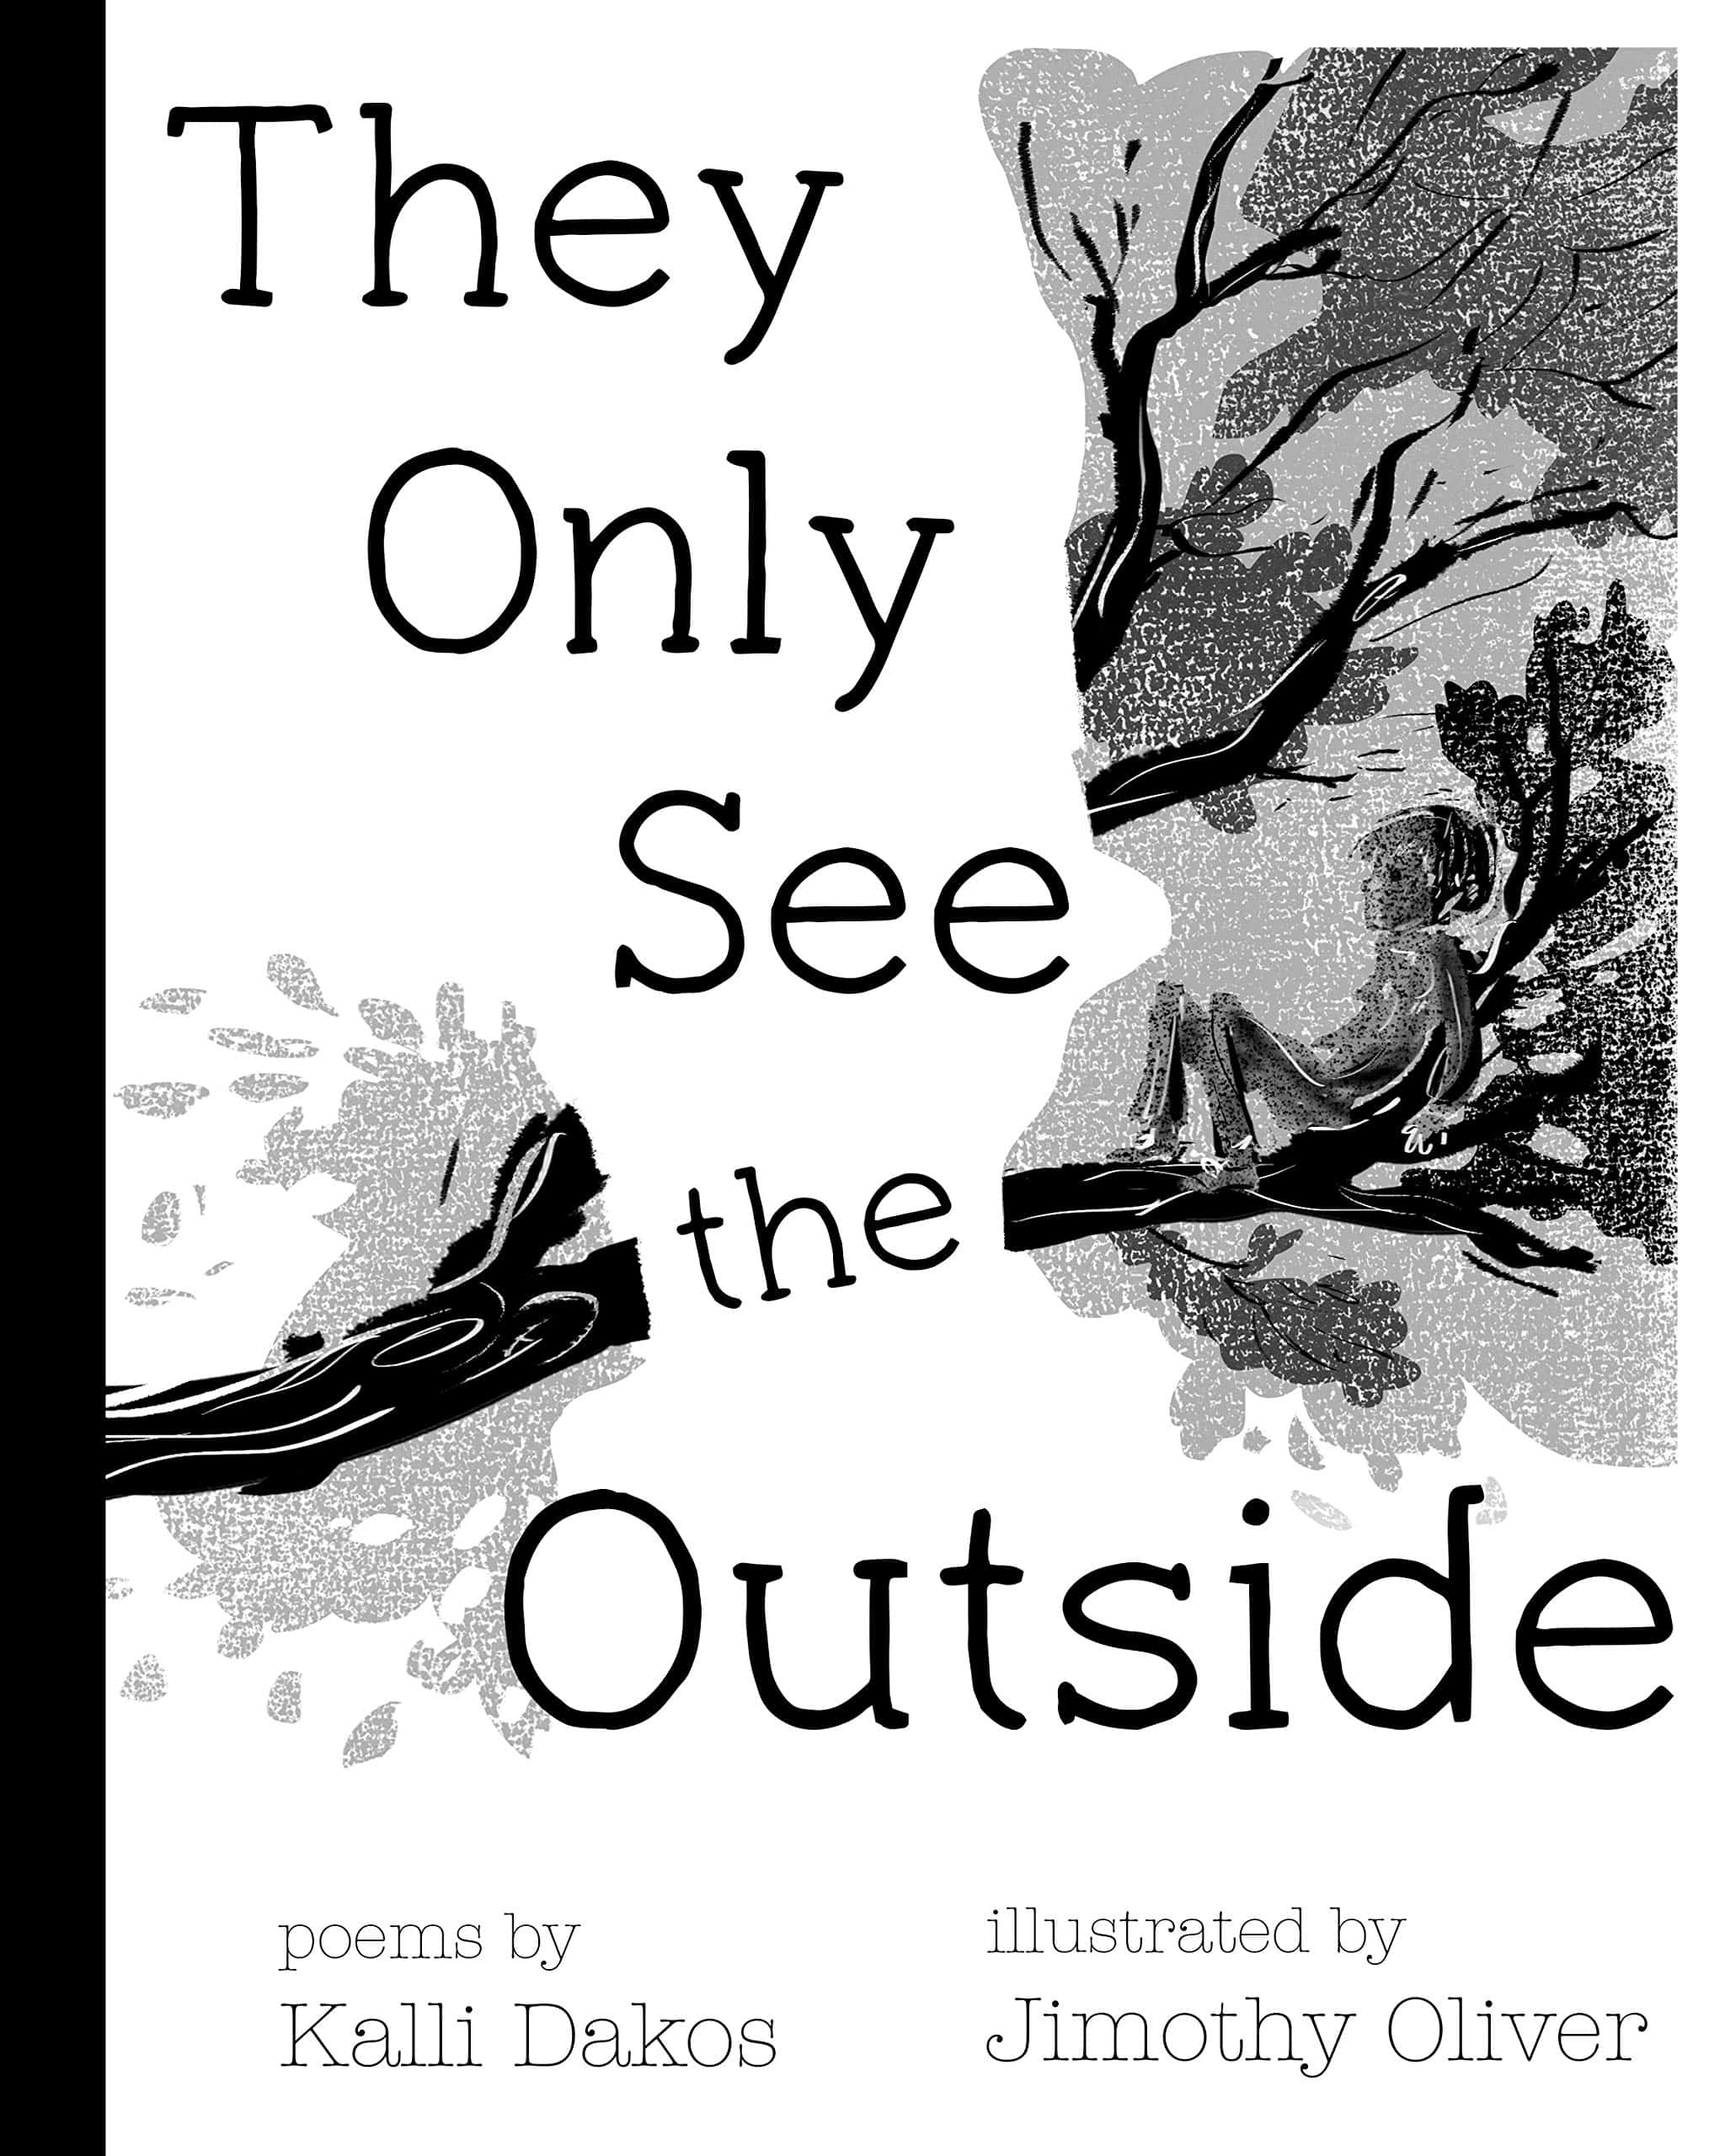 They Only See the Outside